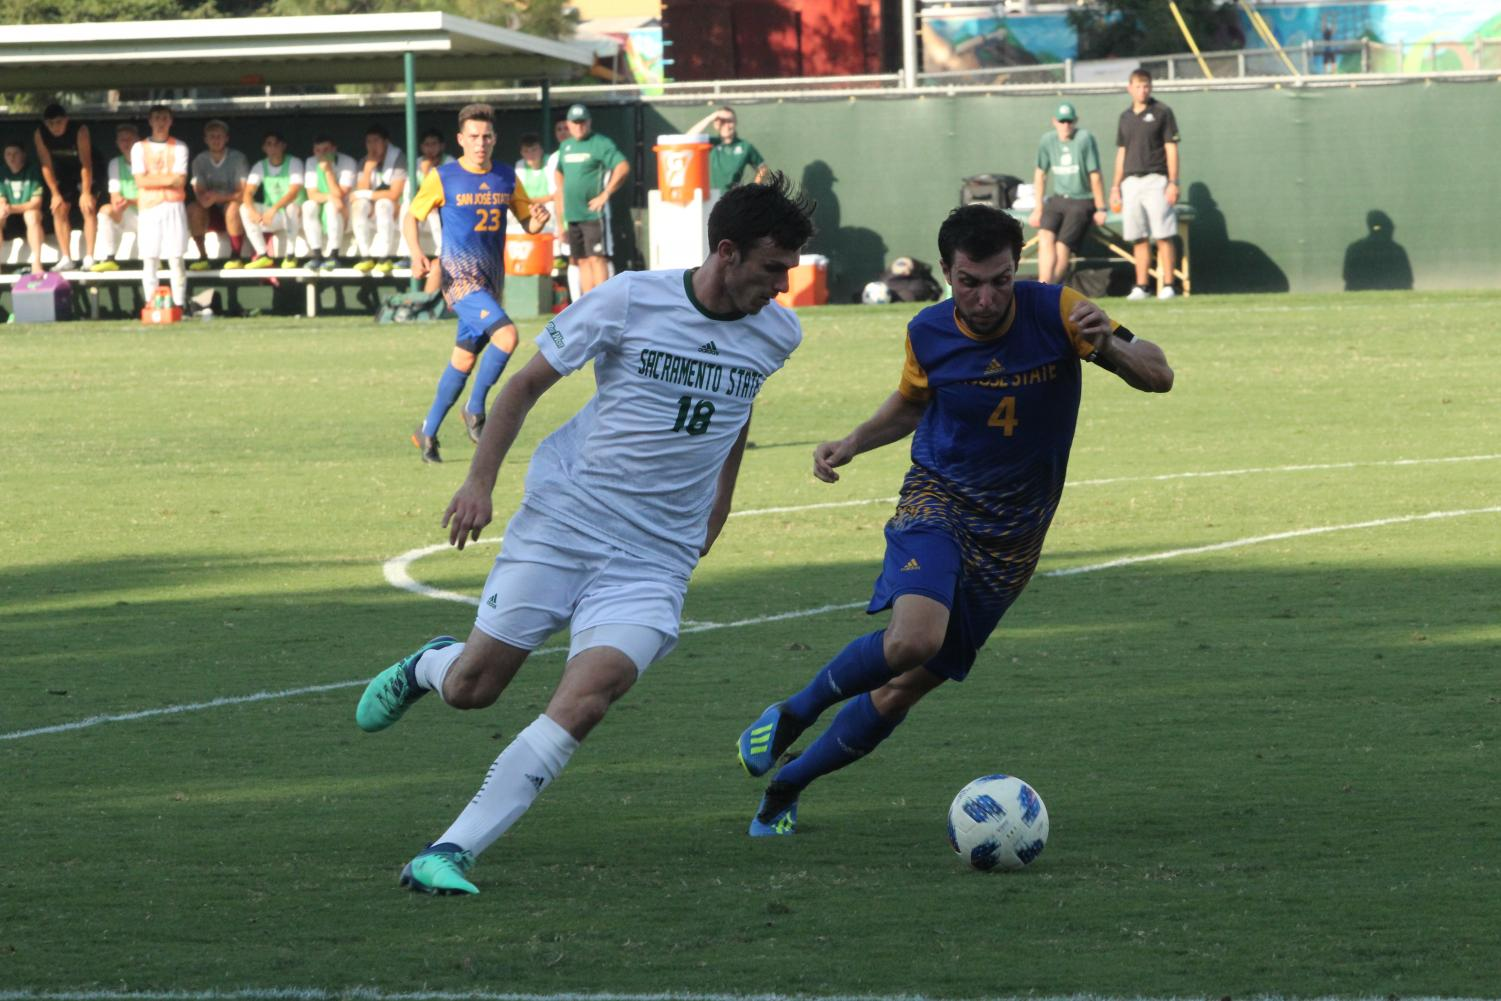 Sacramento State senior forward Brad Bumgarner tries to dribble the ball past Joseph Kay of San Jose State to go towards the goal. The Hornets lost their first home match 2-1 against San Jose State on Sept. 2 at Hornet Field.